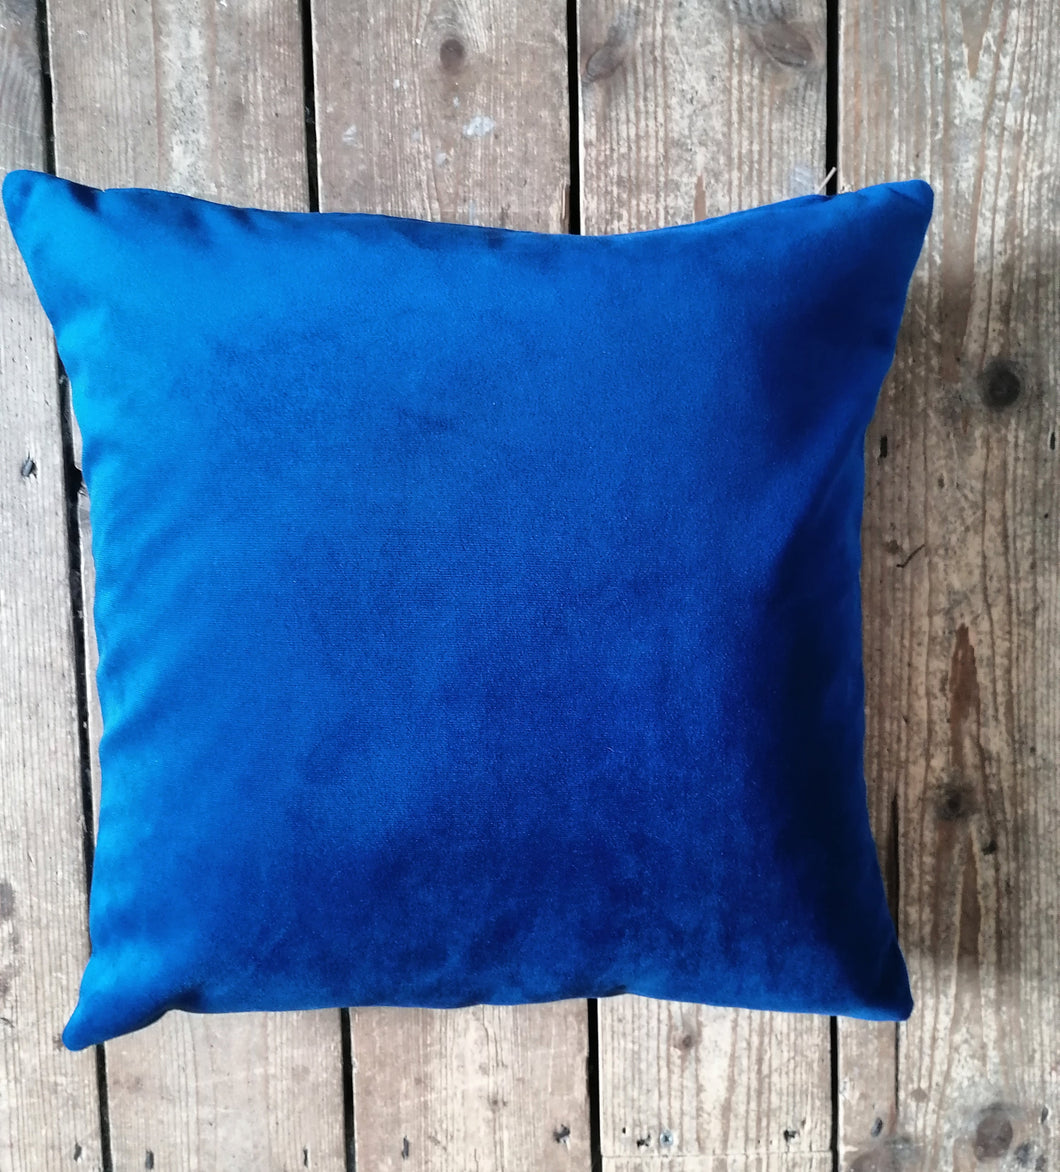 Moleskin velvet cushion in a cobalt blue